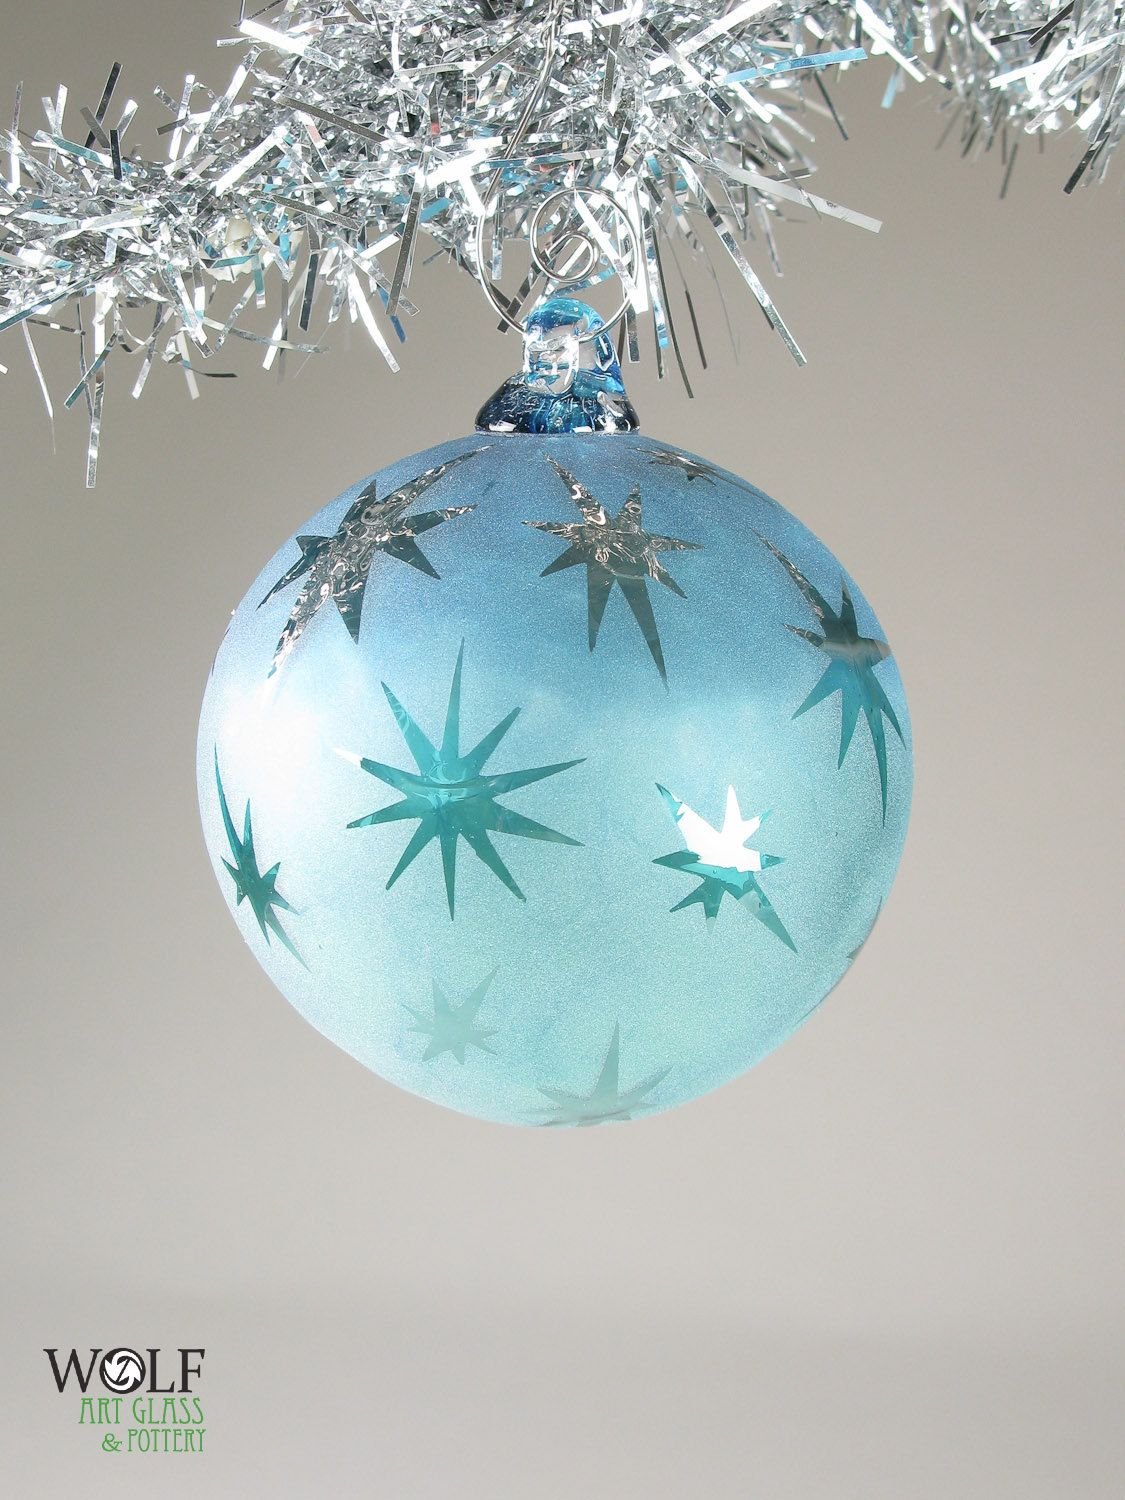 Blown Glass Ornament Signature Series Blue Ombre Retro Shiny Star Etch 42 00 Blue Christmas Ornaments Candy Christmas Decorations Vintage Christmas Ornaments